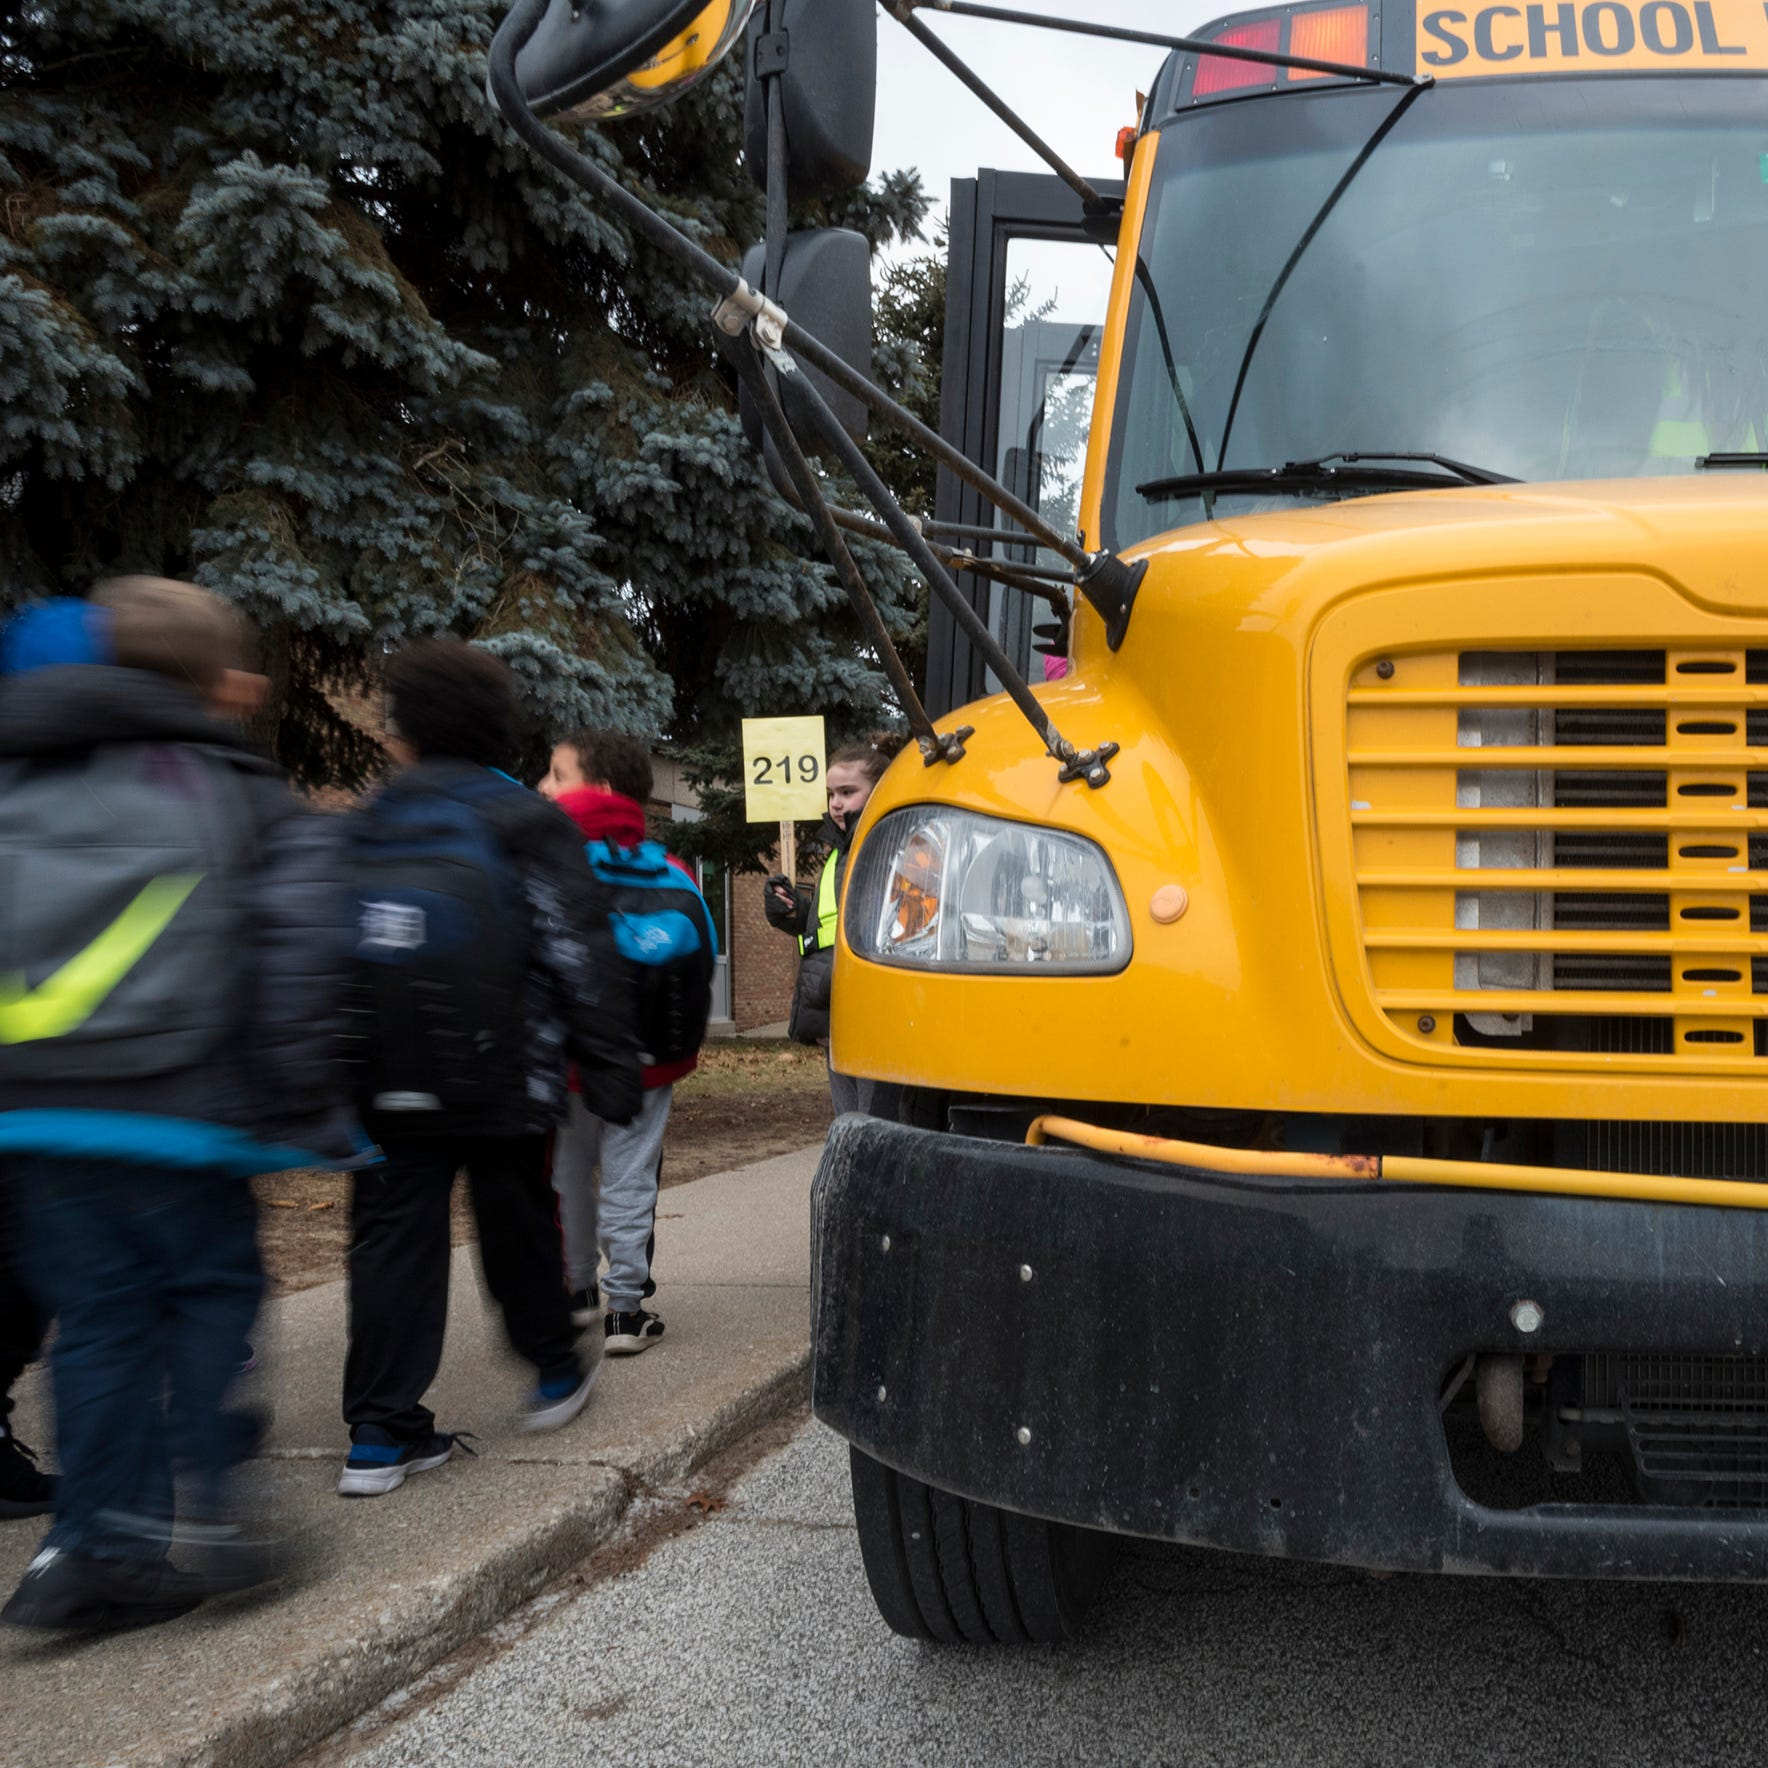 Finding right drivers for 'precious cargo' can be challenging for districts